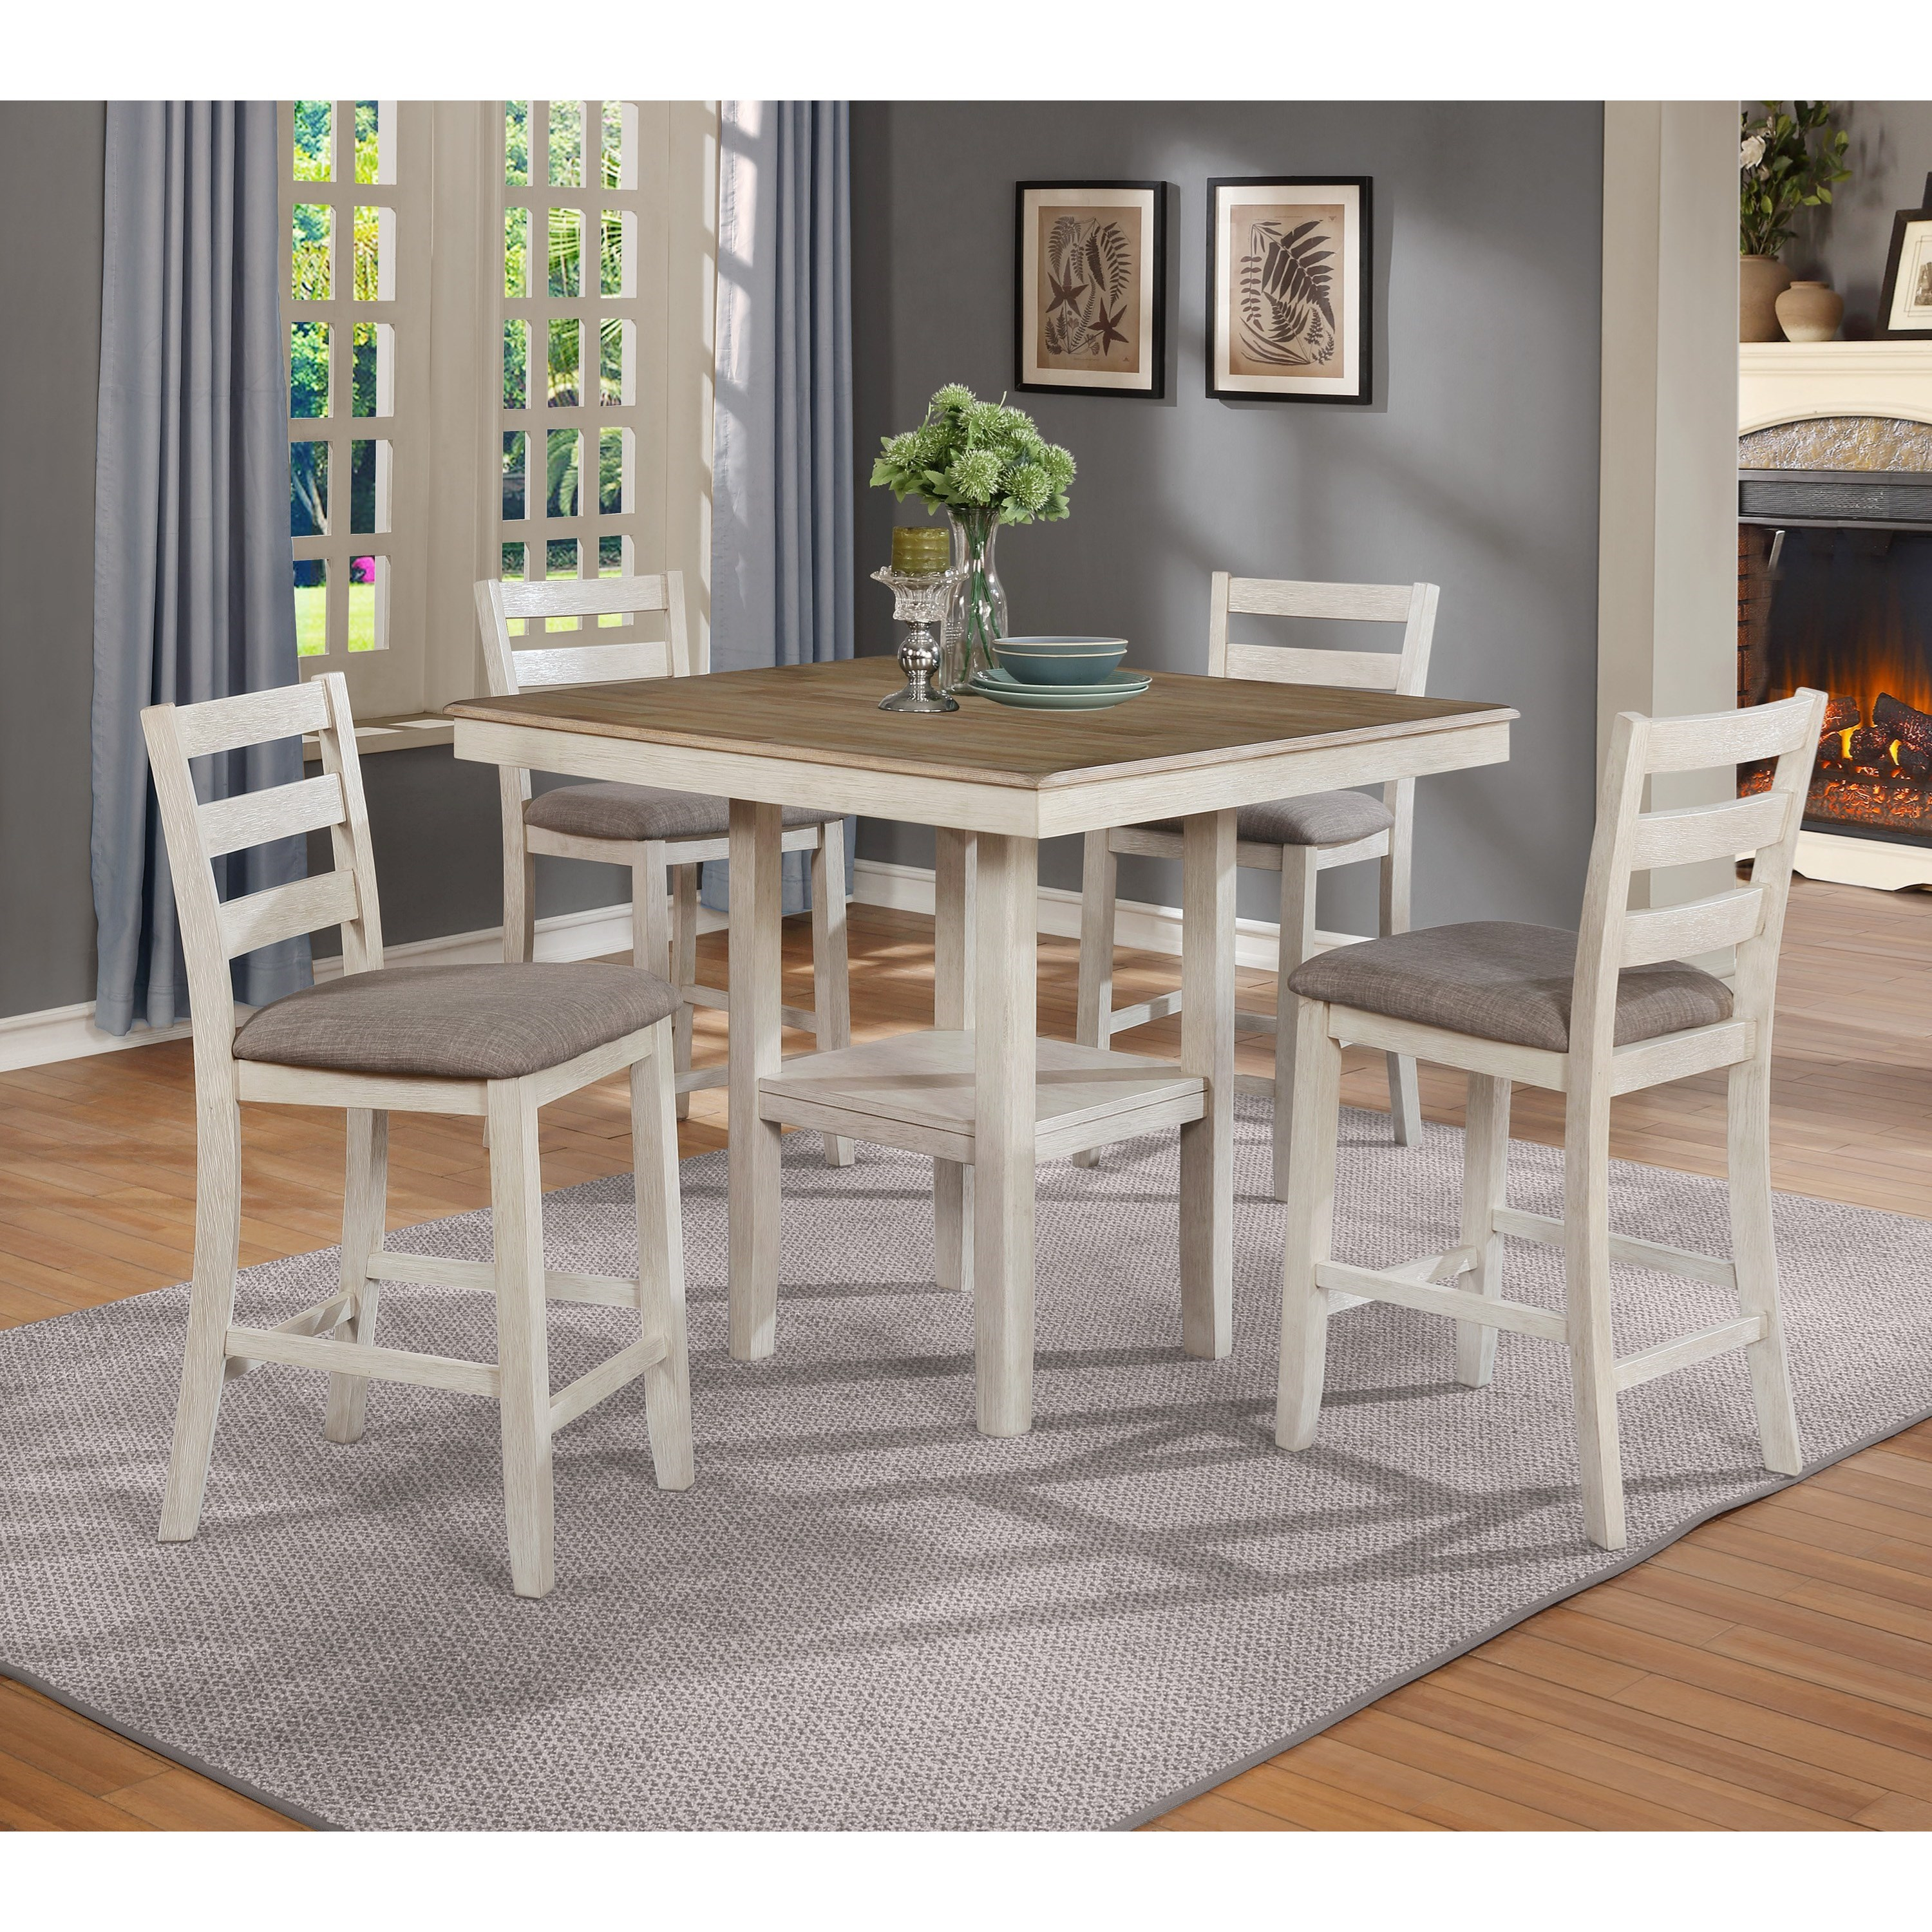 Crown Mark Tahoe 2630set Wh 5 Piece Counter Height Table And Chairs Set Dunk Bright Furniture Pub Table And Stool Sets